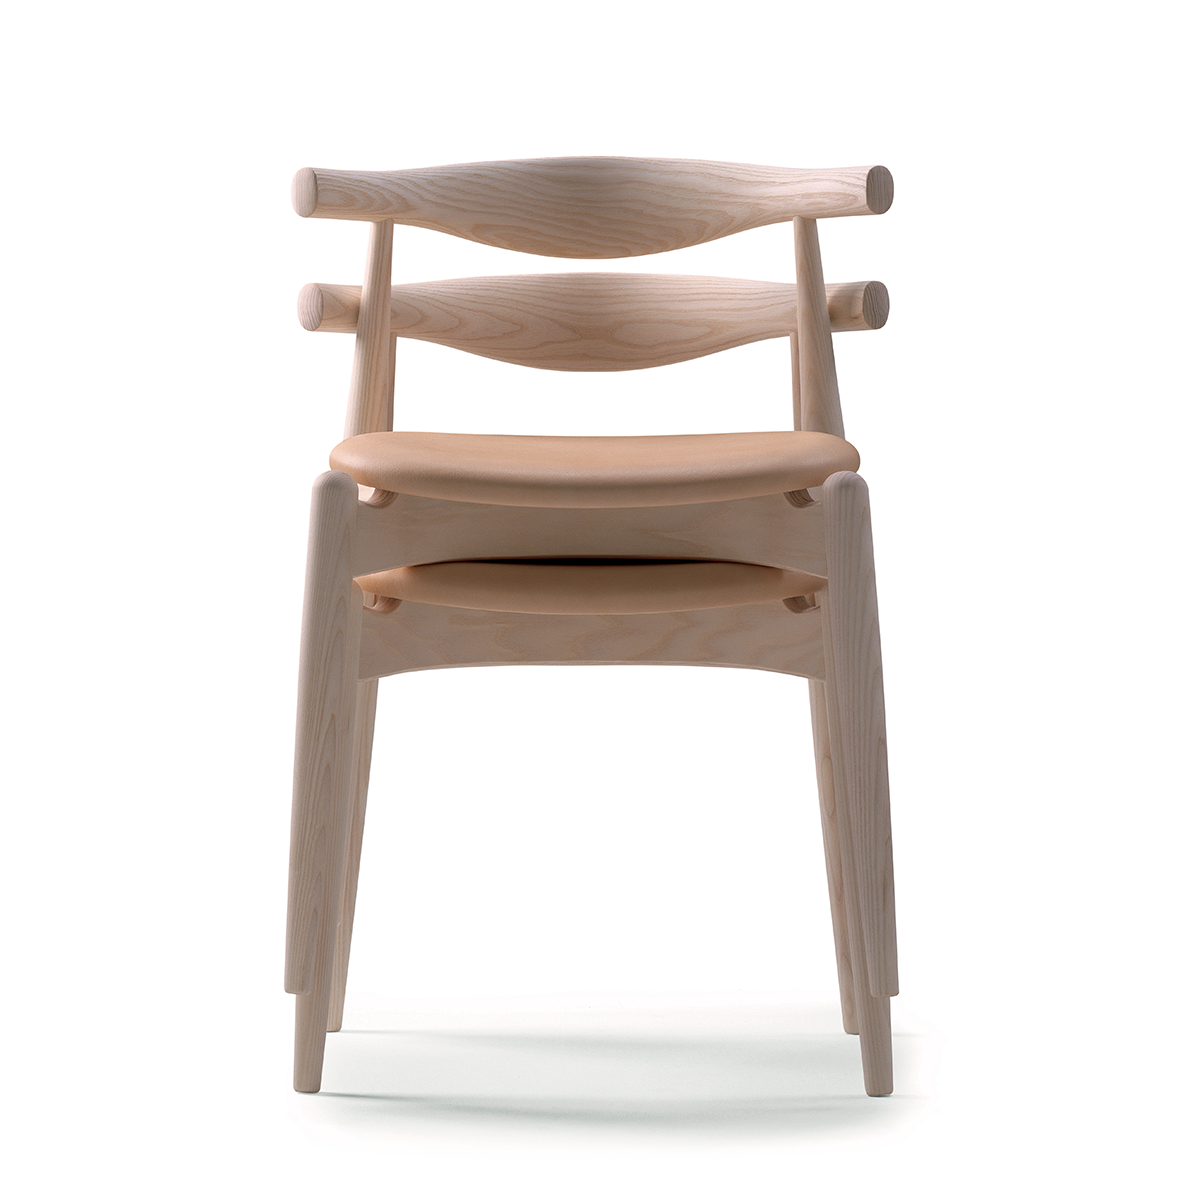 Carl Hansen & Son CH 20 Elbow Chair with Soap Finish 手肘椅 皂裝款